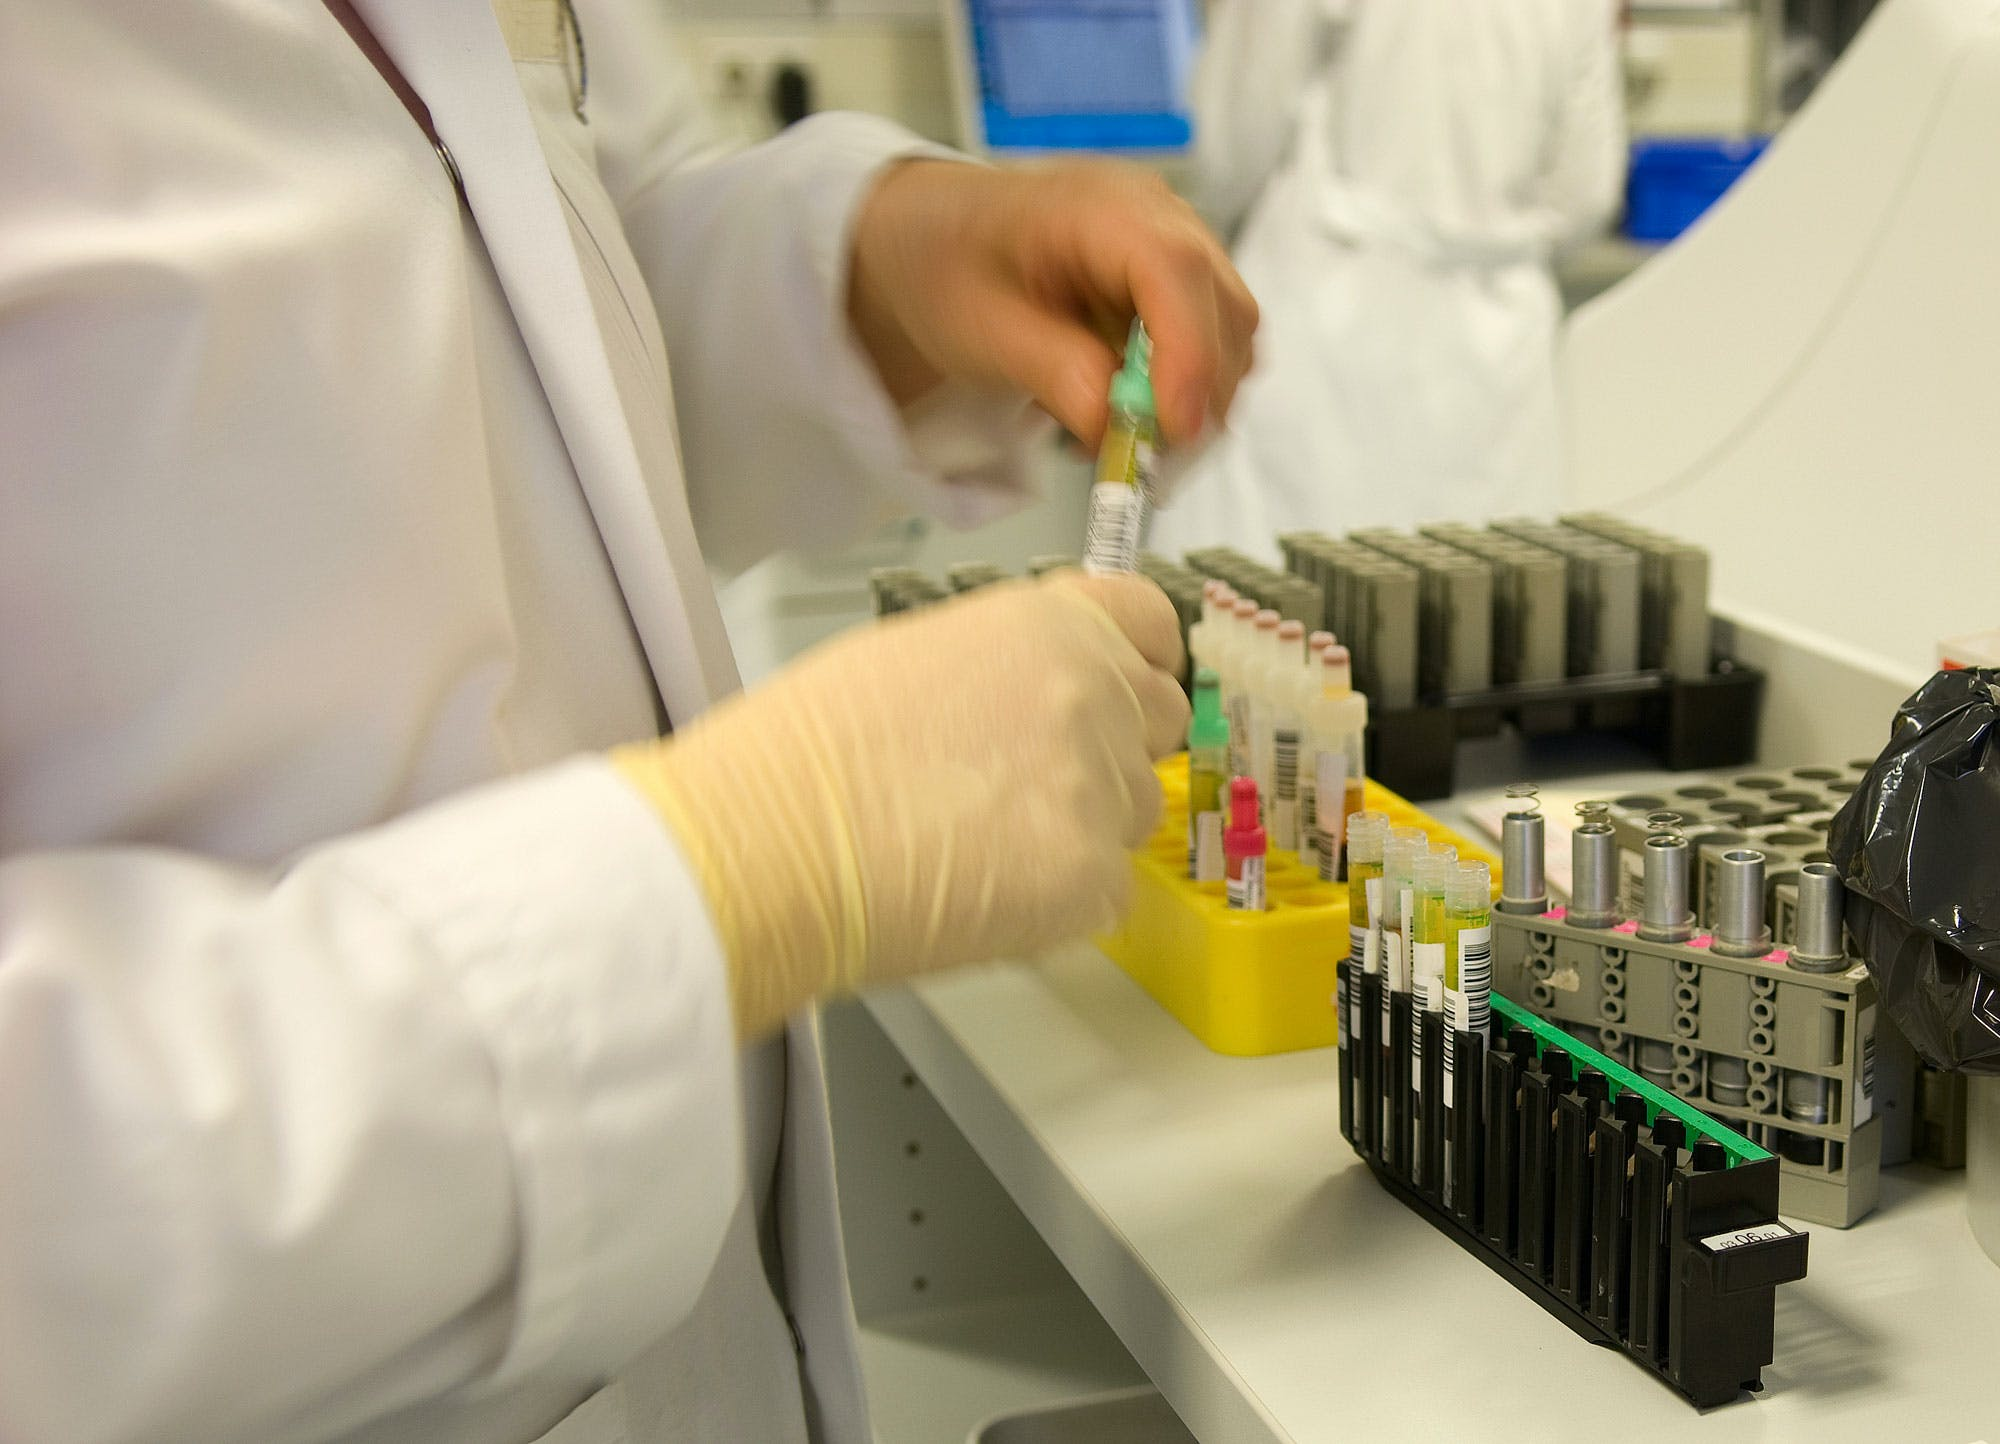 What Should You Expect During A THC Drug Test 2 What Should You Expect During A THC Drug Test?